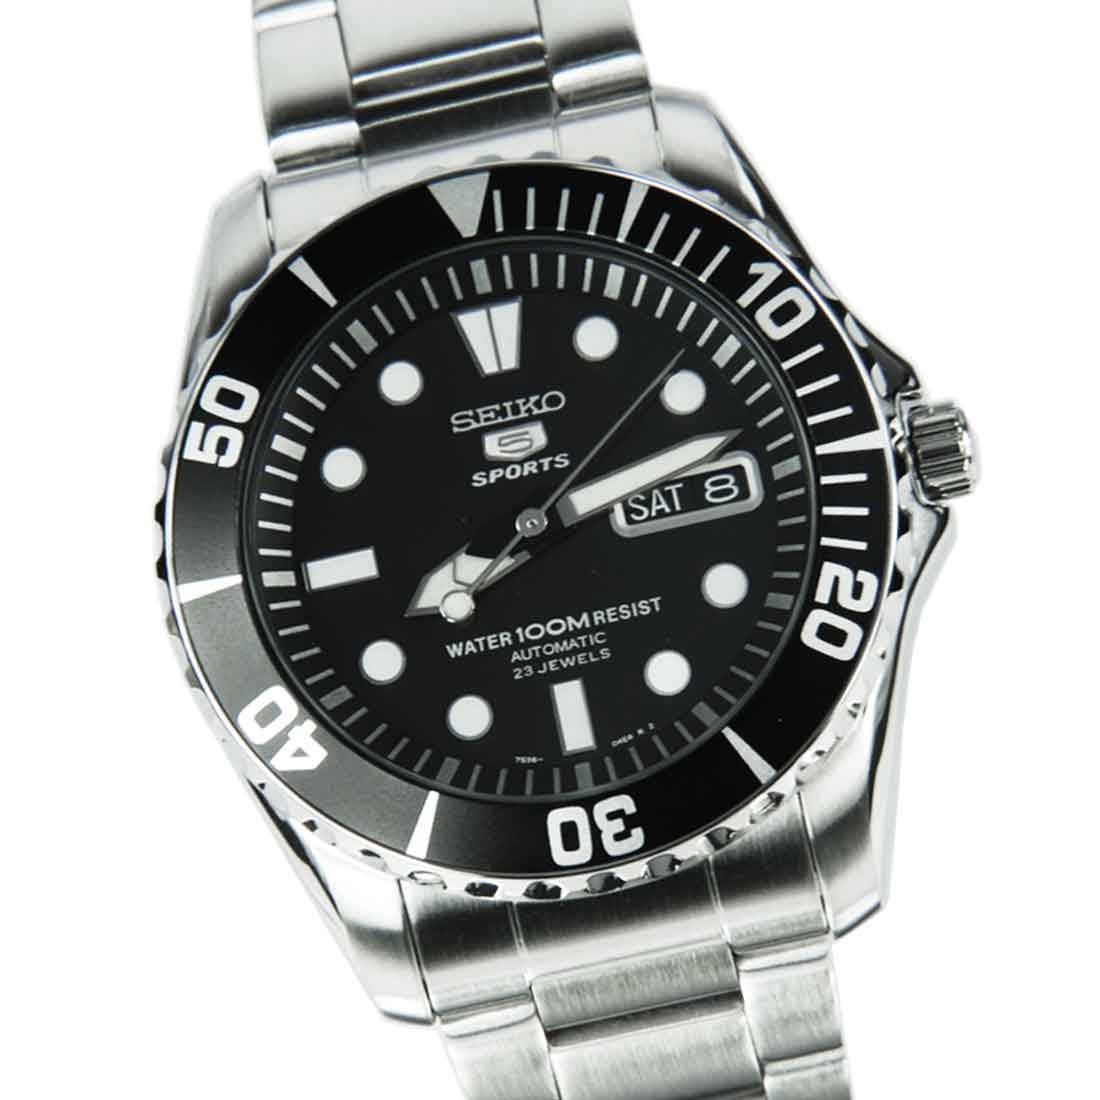 Seiko SNZF17K1 SNZF17K SNZF17 automatic divers watch in